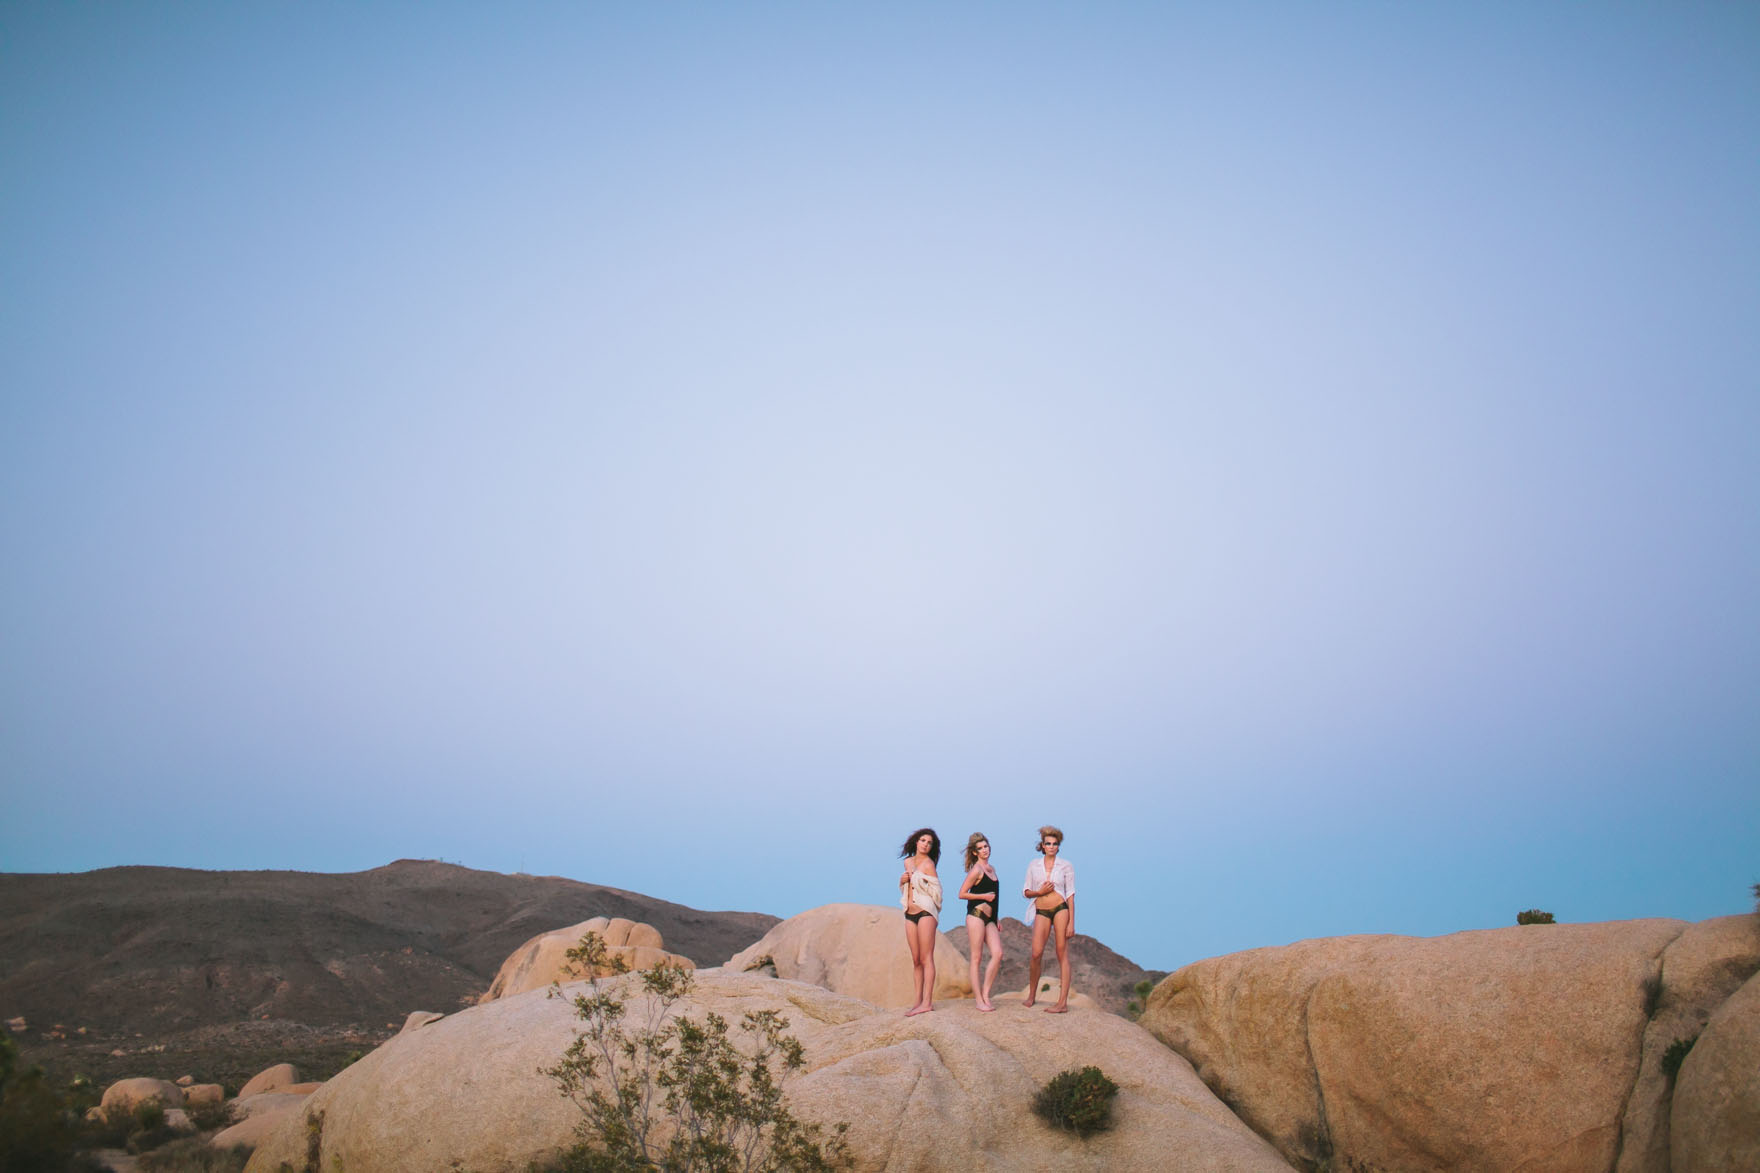 Desert Goddesses Fashion Editorial – Photo by Let's Frolic Together